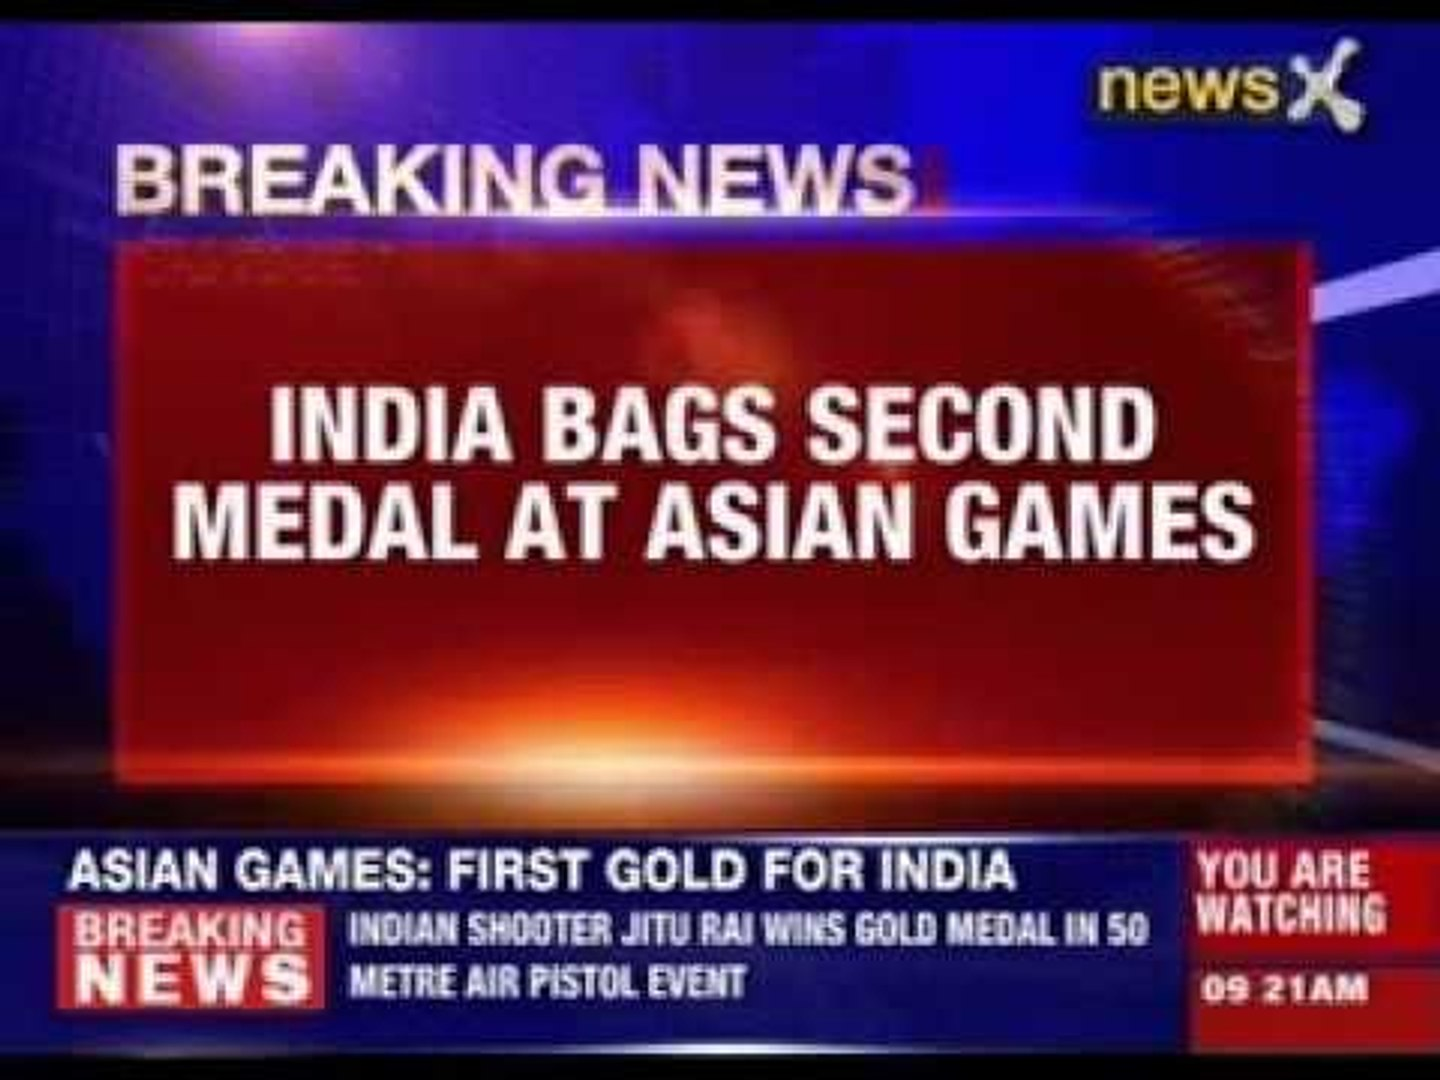 India bags second medal at Asian games